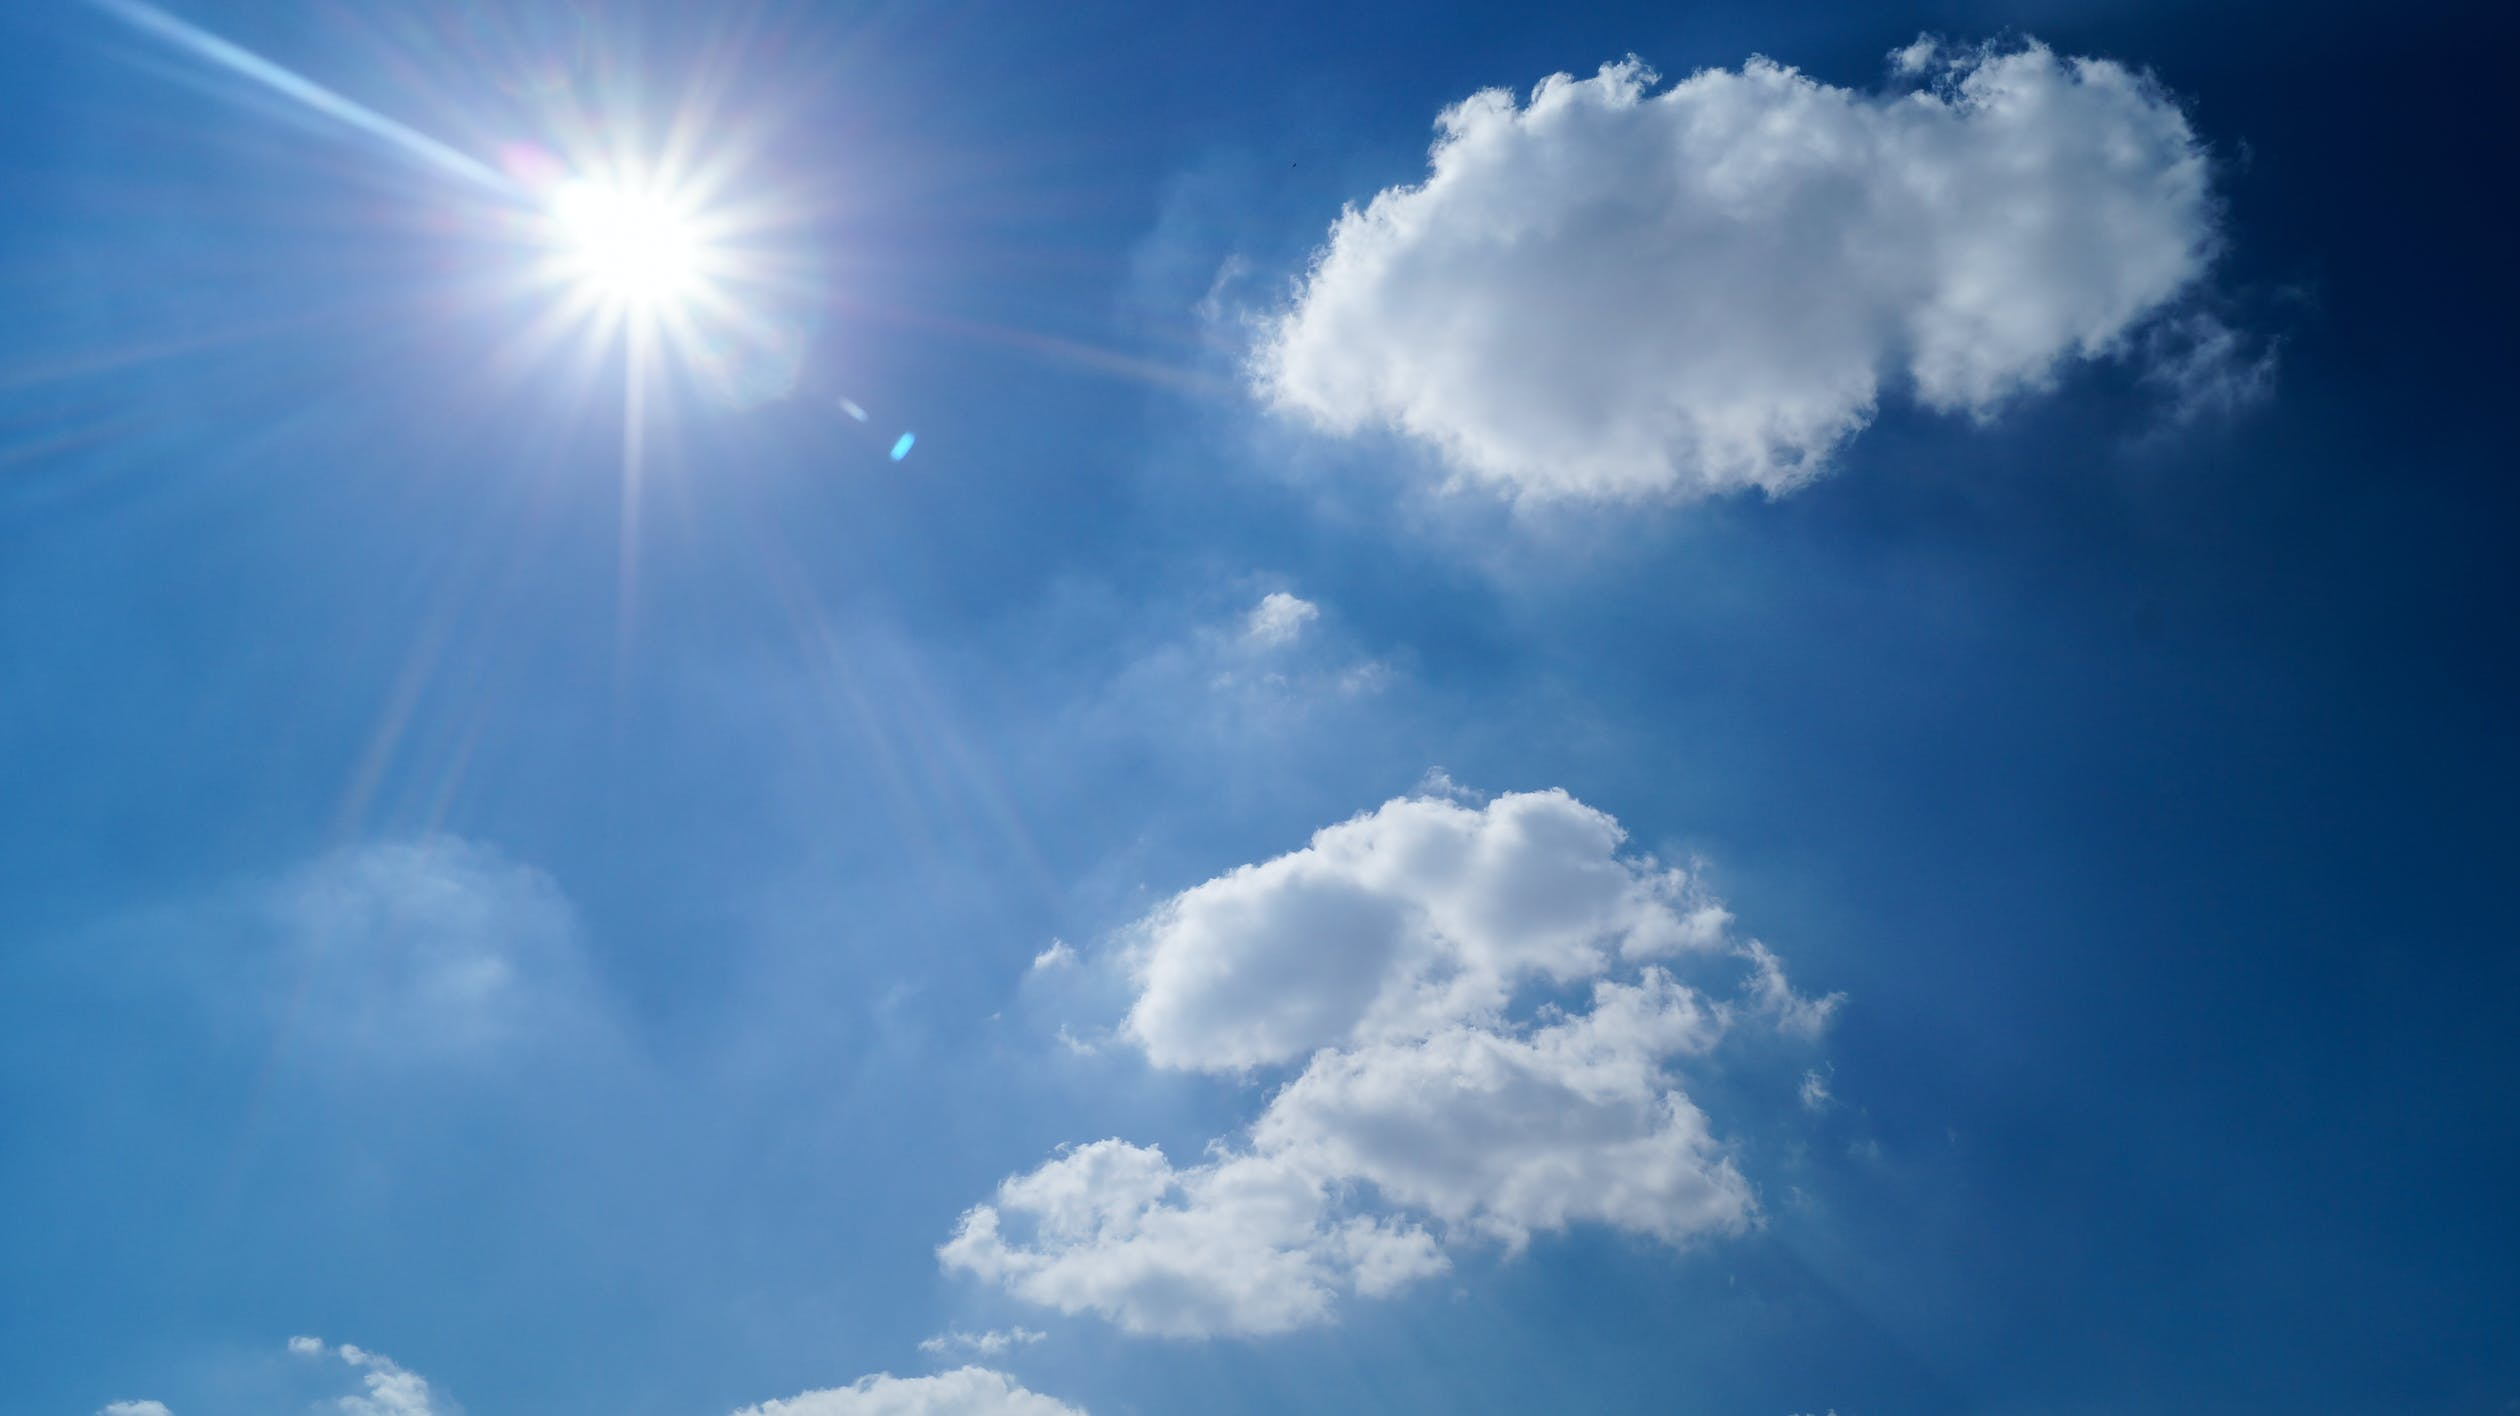 sunshine with some clouds and blue sky